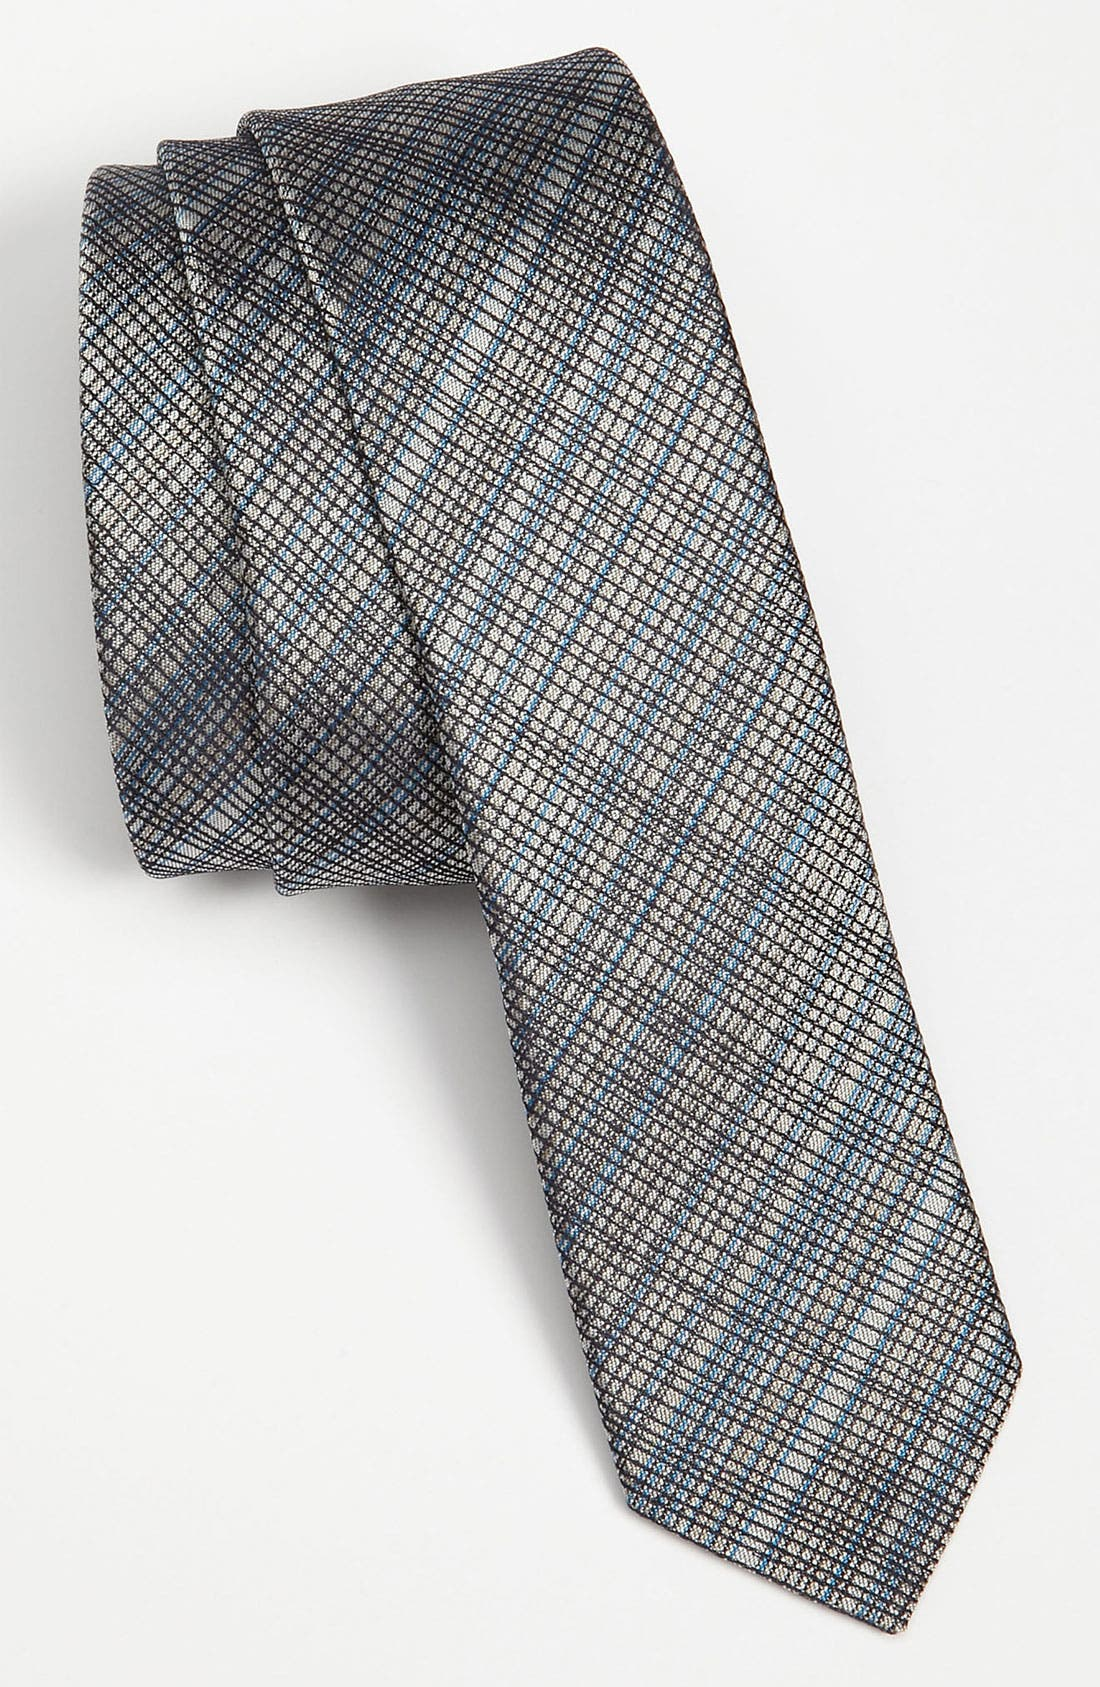 Alternate Image 1 Selected - HUGO Skinny Woven Silk Tie